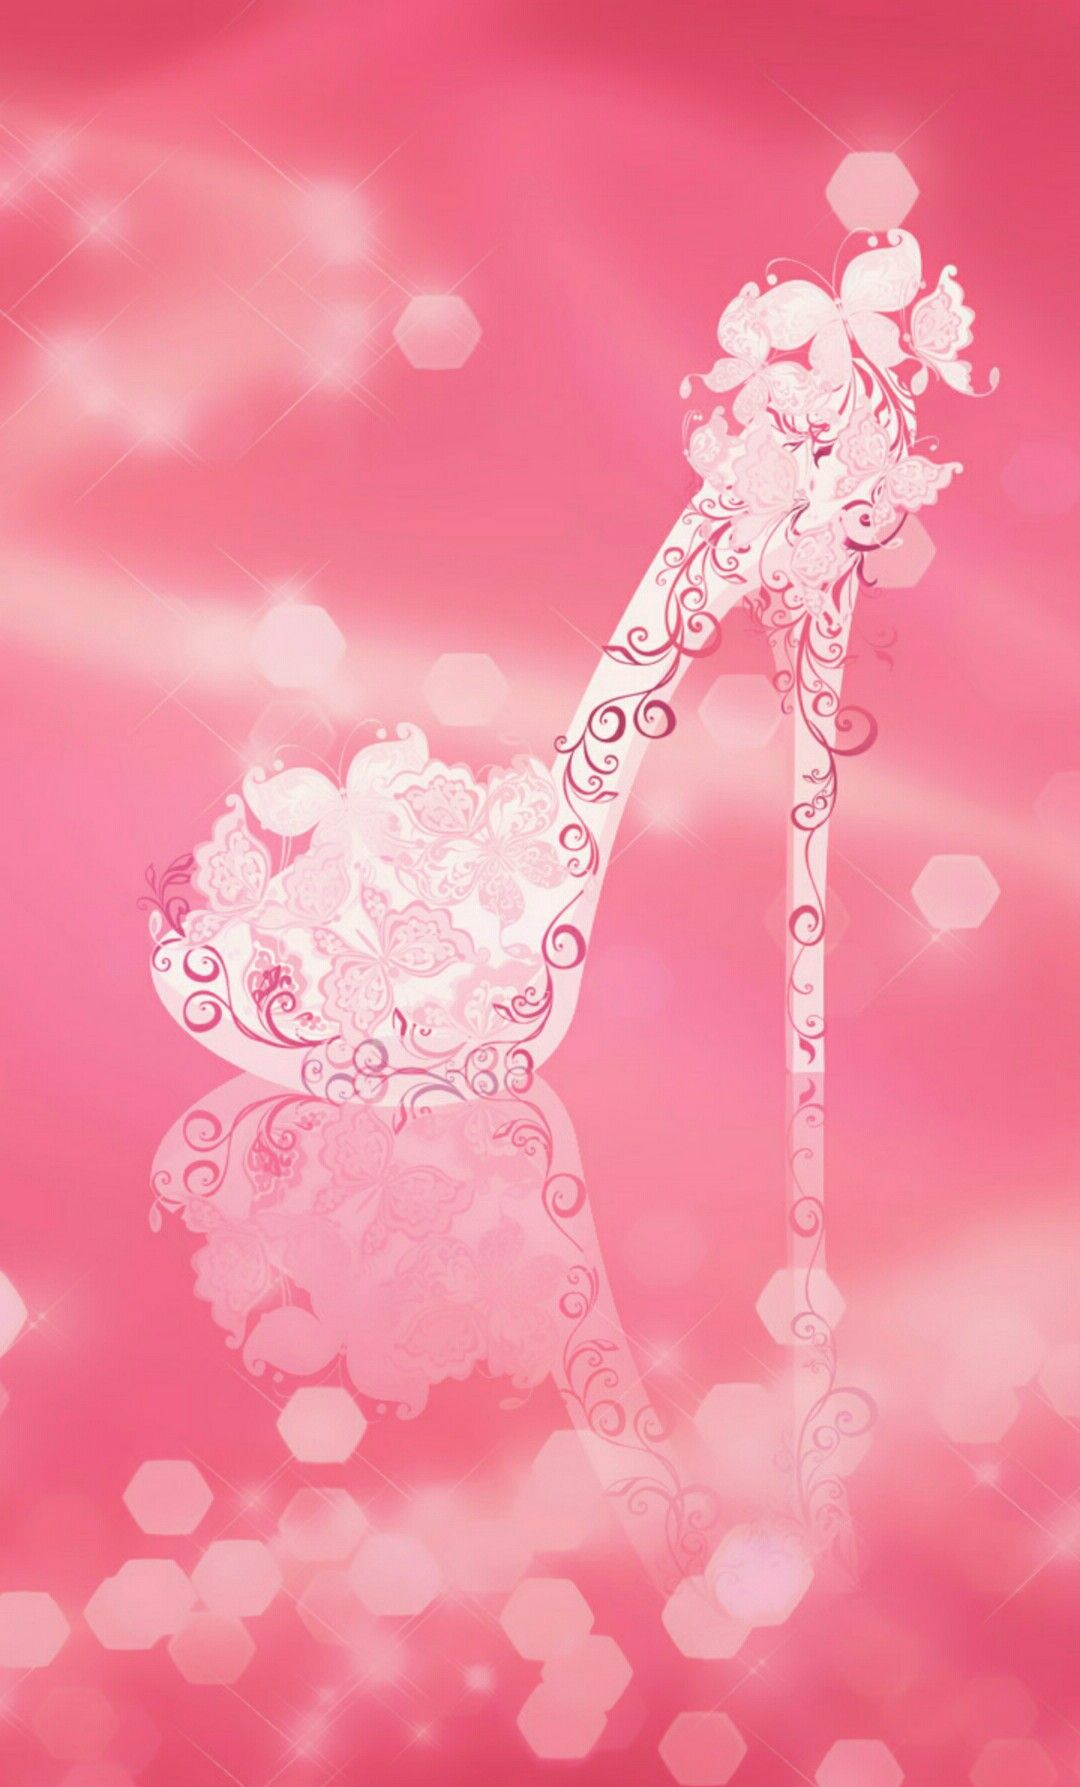 High Heel On Pink Wallpaper By Artist Unknown Phone Wallpaper Images Cute Girl Wallpaper Wallpaper